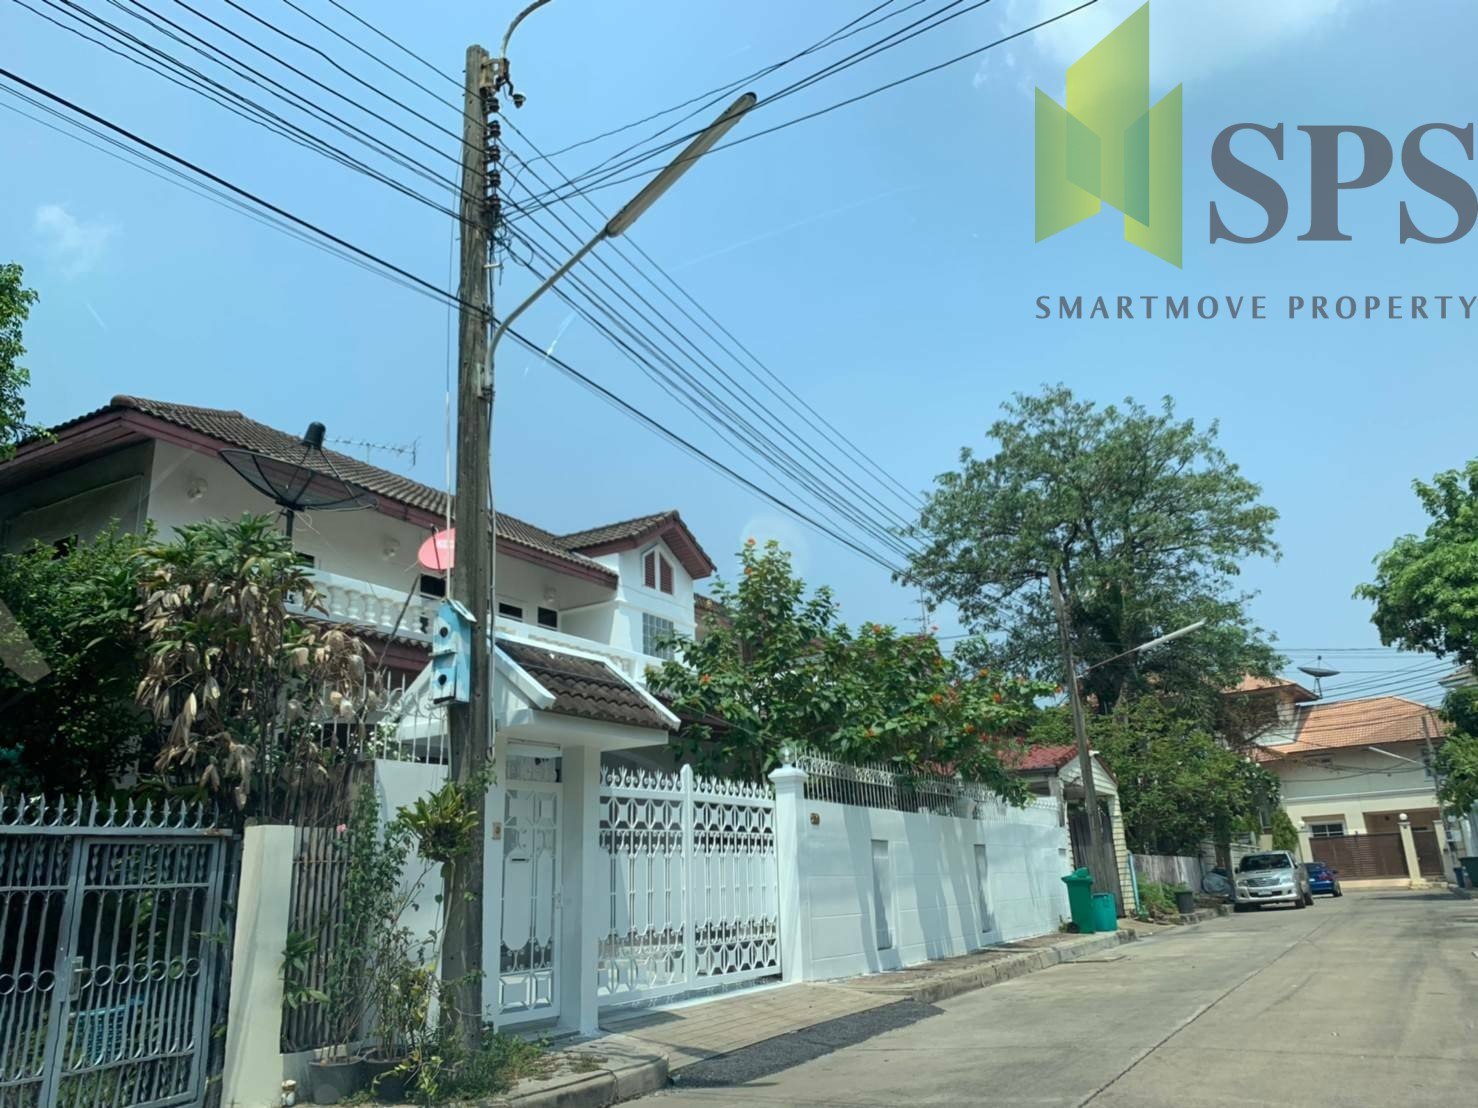 Single Detached House for RENT in Phakamat Village Soi Sukhumvit 71 (SPSP222)